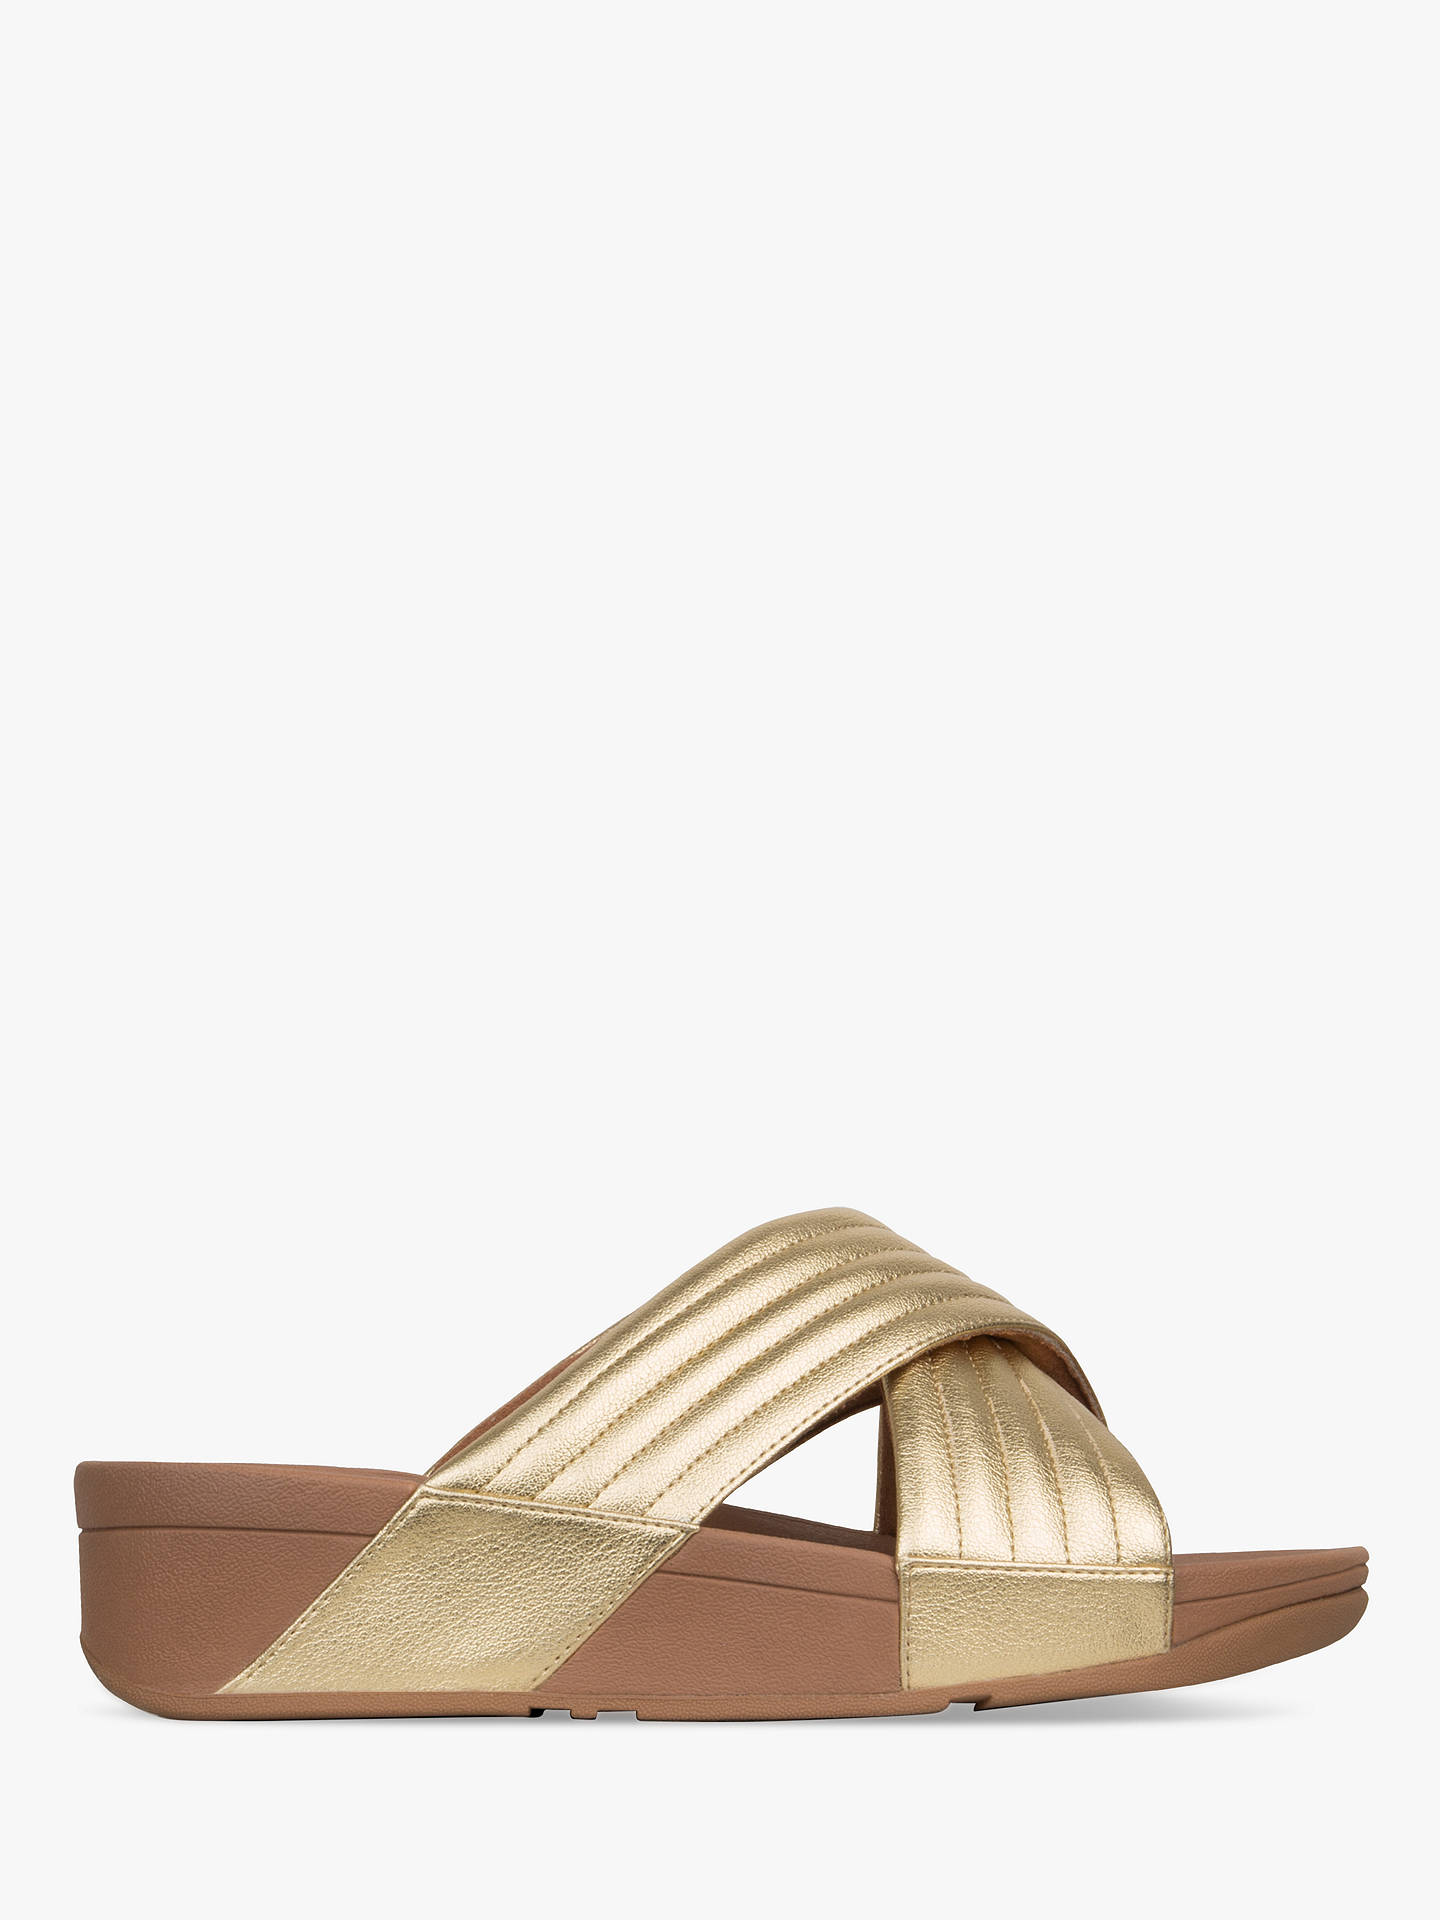 3b612f6686 FitFlop Lulu Padded Cross Slider Sandals at John Lewis   Partners